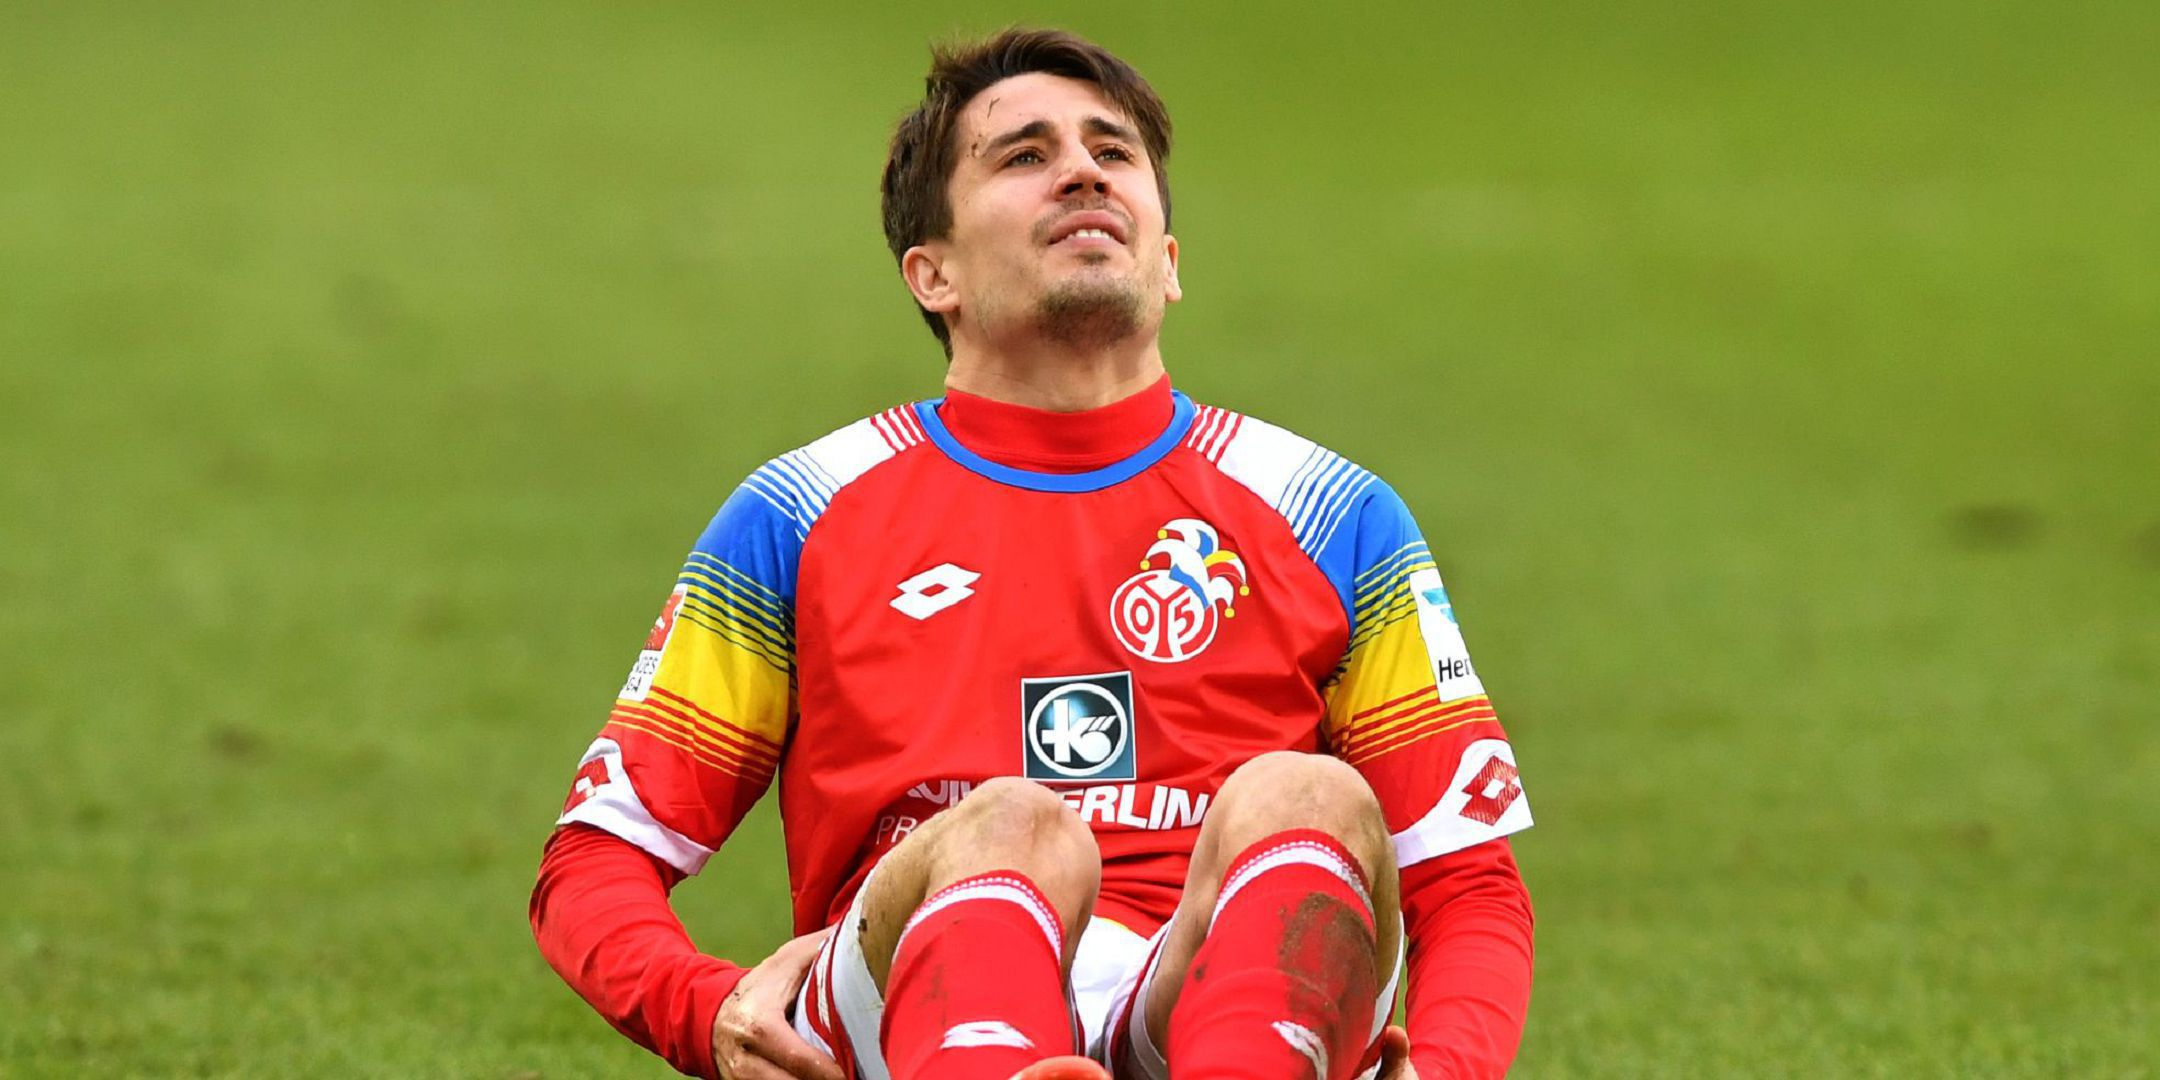 Bojan Krkic In High Resolution